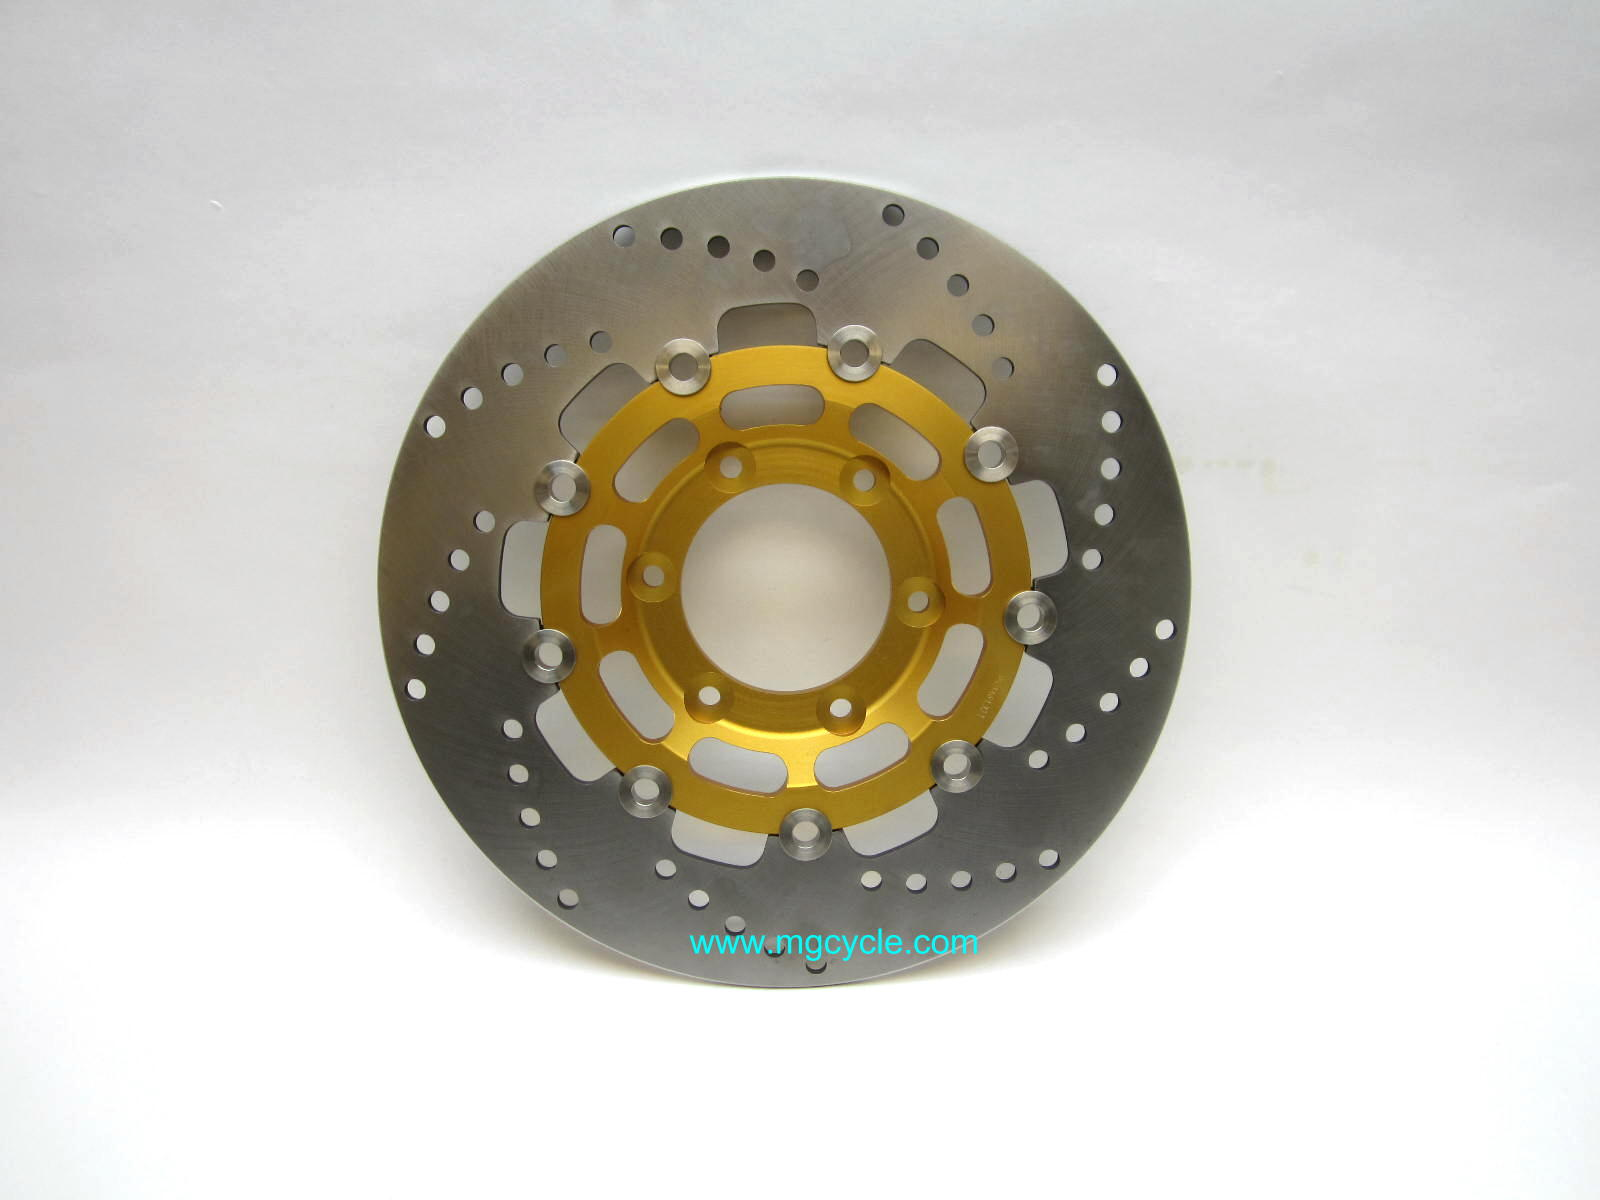 EBC 300mm Pro-lite full floating brake disks, right side